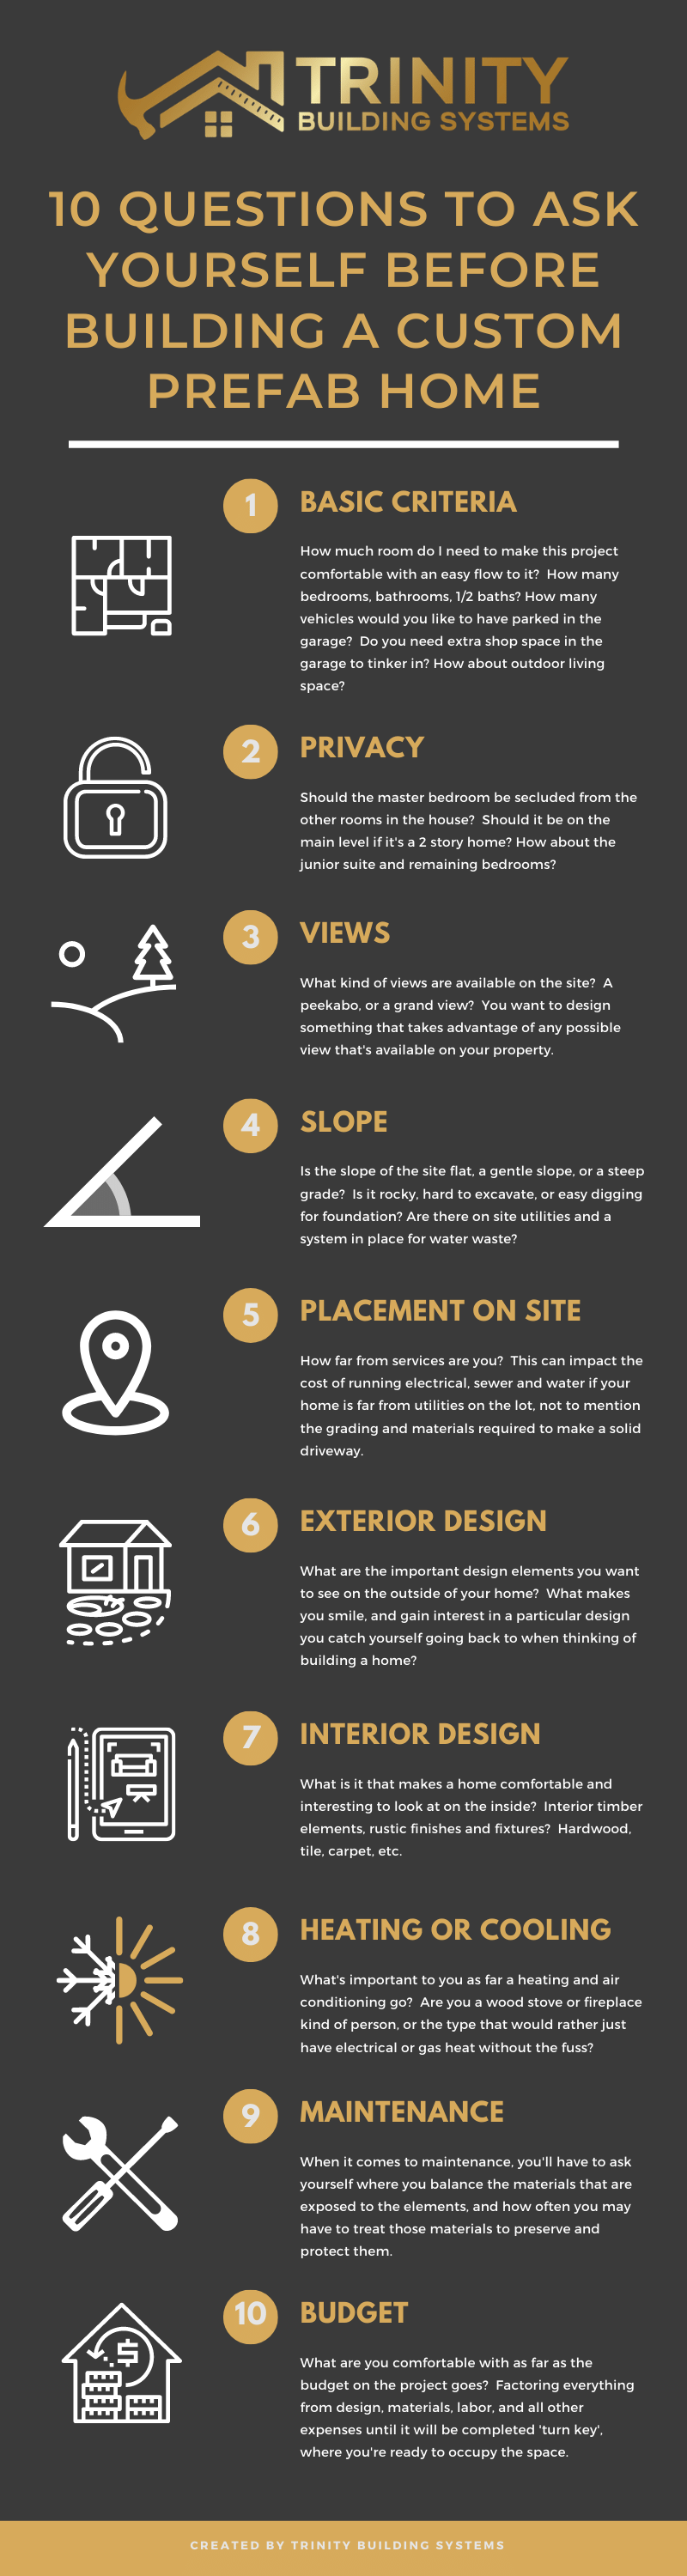 Infographic walking through ten questions you must ask yourself before building a custom prefab home.